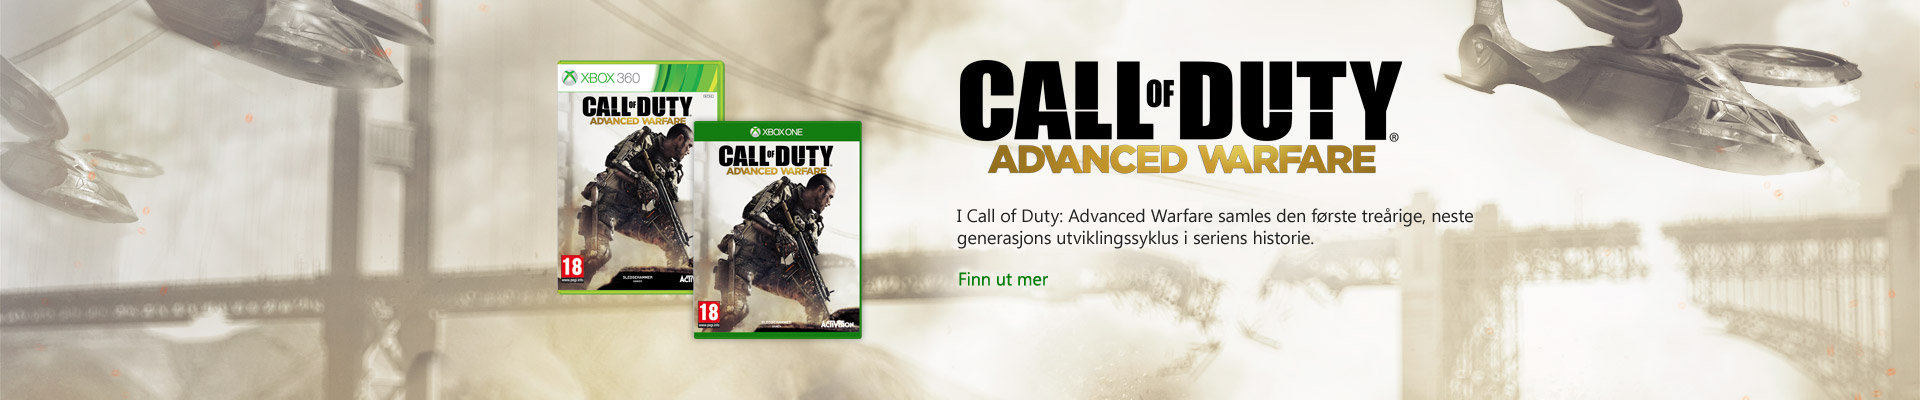 cod-advanced-warfare for Xbox One